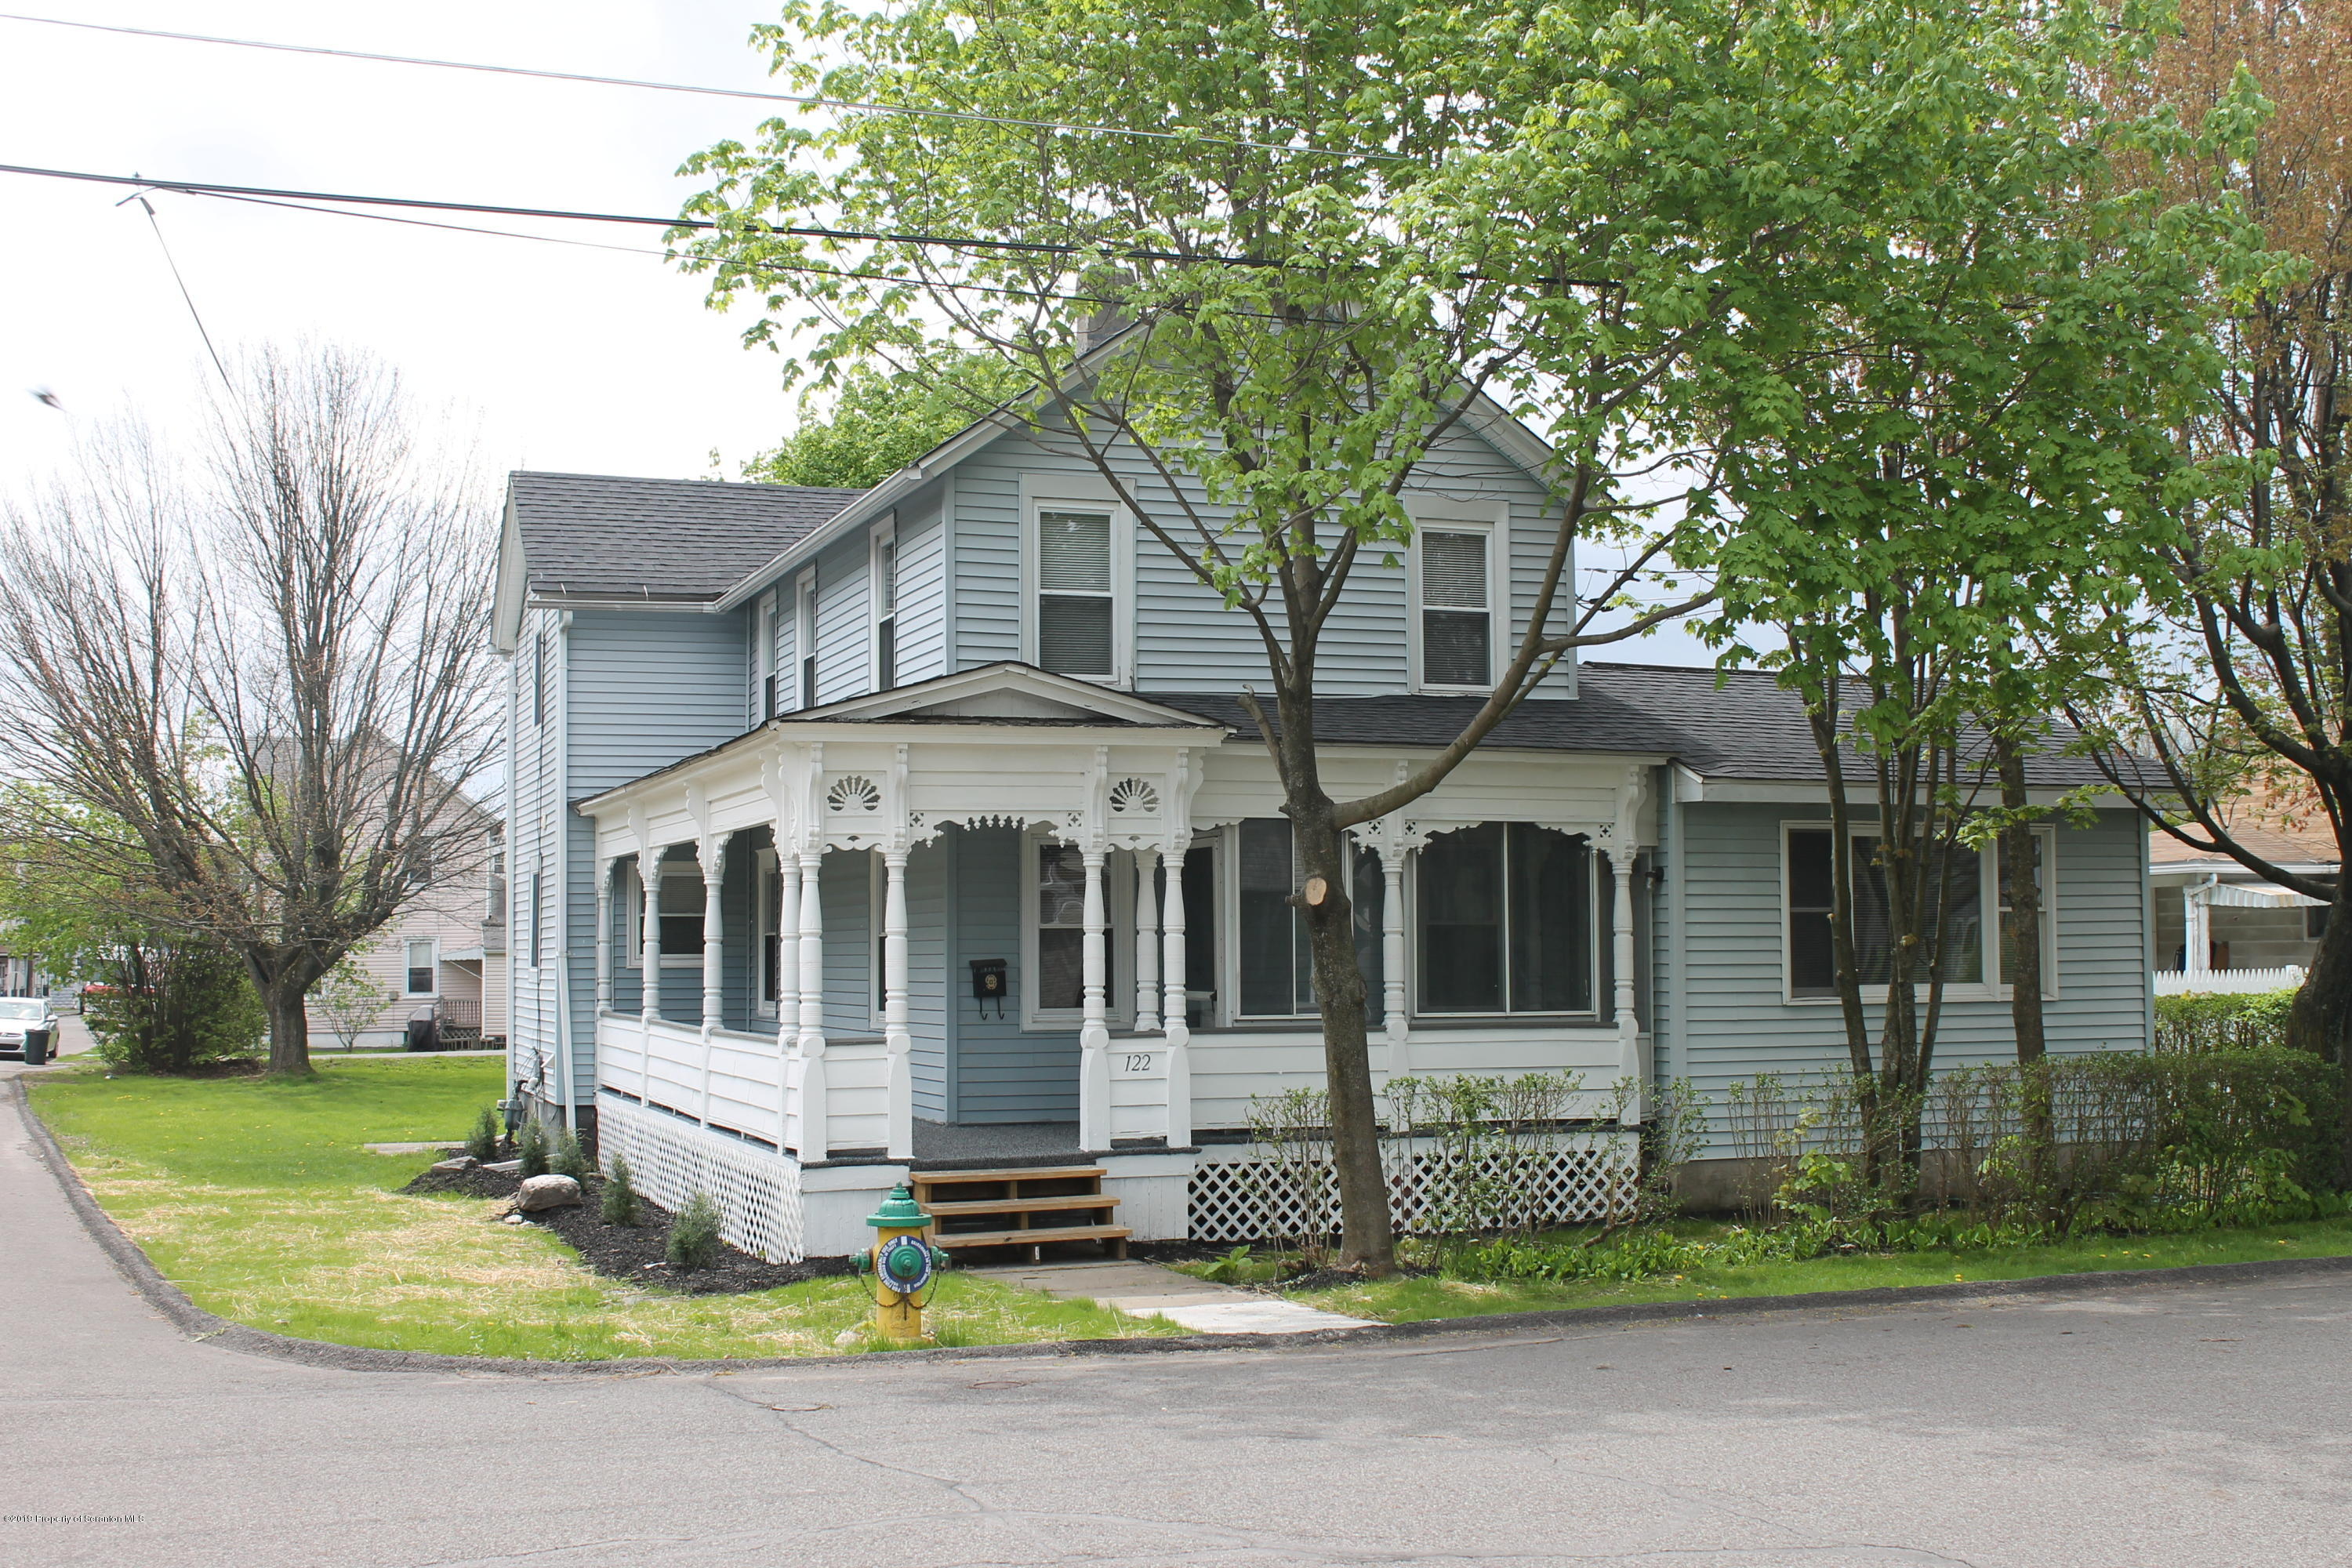 122 Buttonwood St, Jessup, Pennsylvania 18434, 3 Bedrooms Bedrooms, 7 Rooms Rooms,3 BathroomsBathrooms,Single Family,For Sale,Buttonwood,19-1939